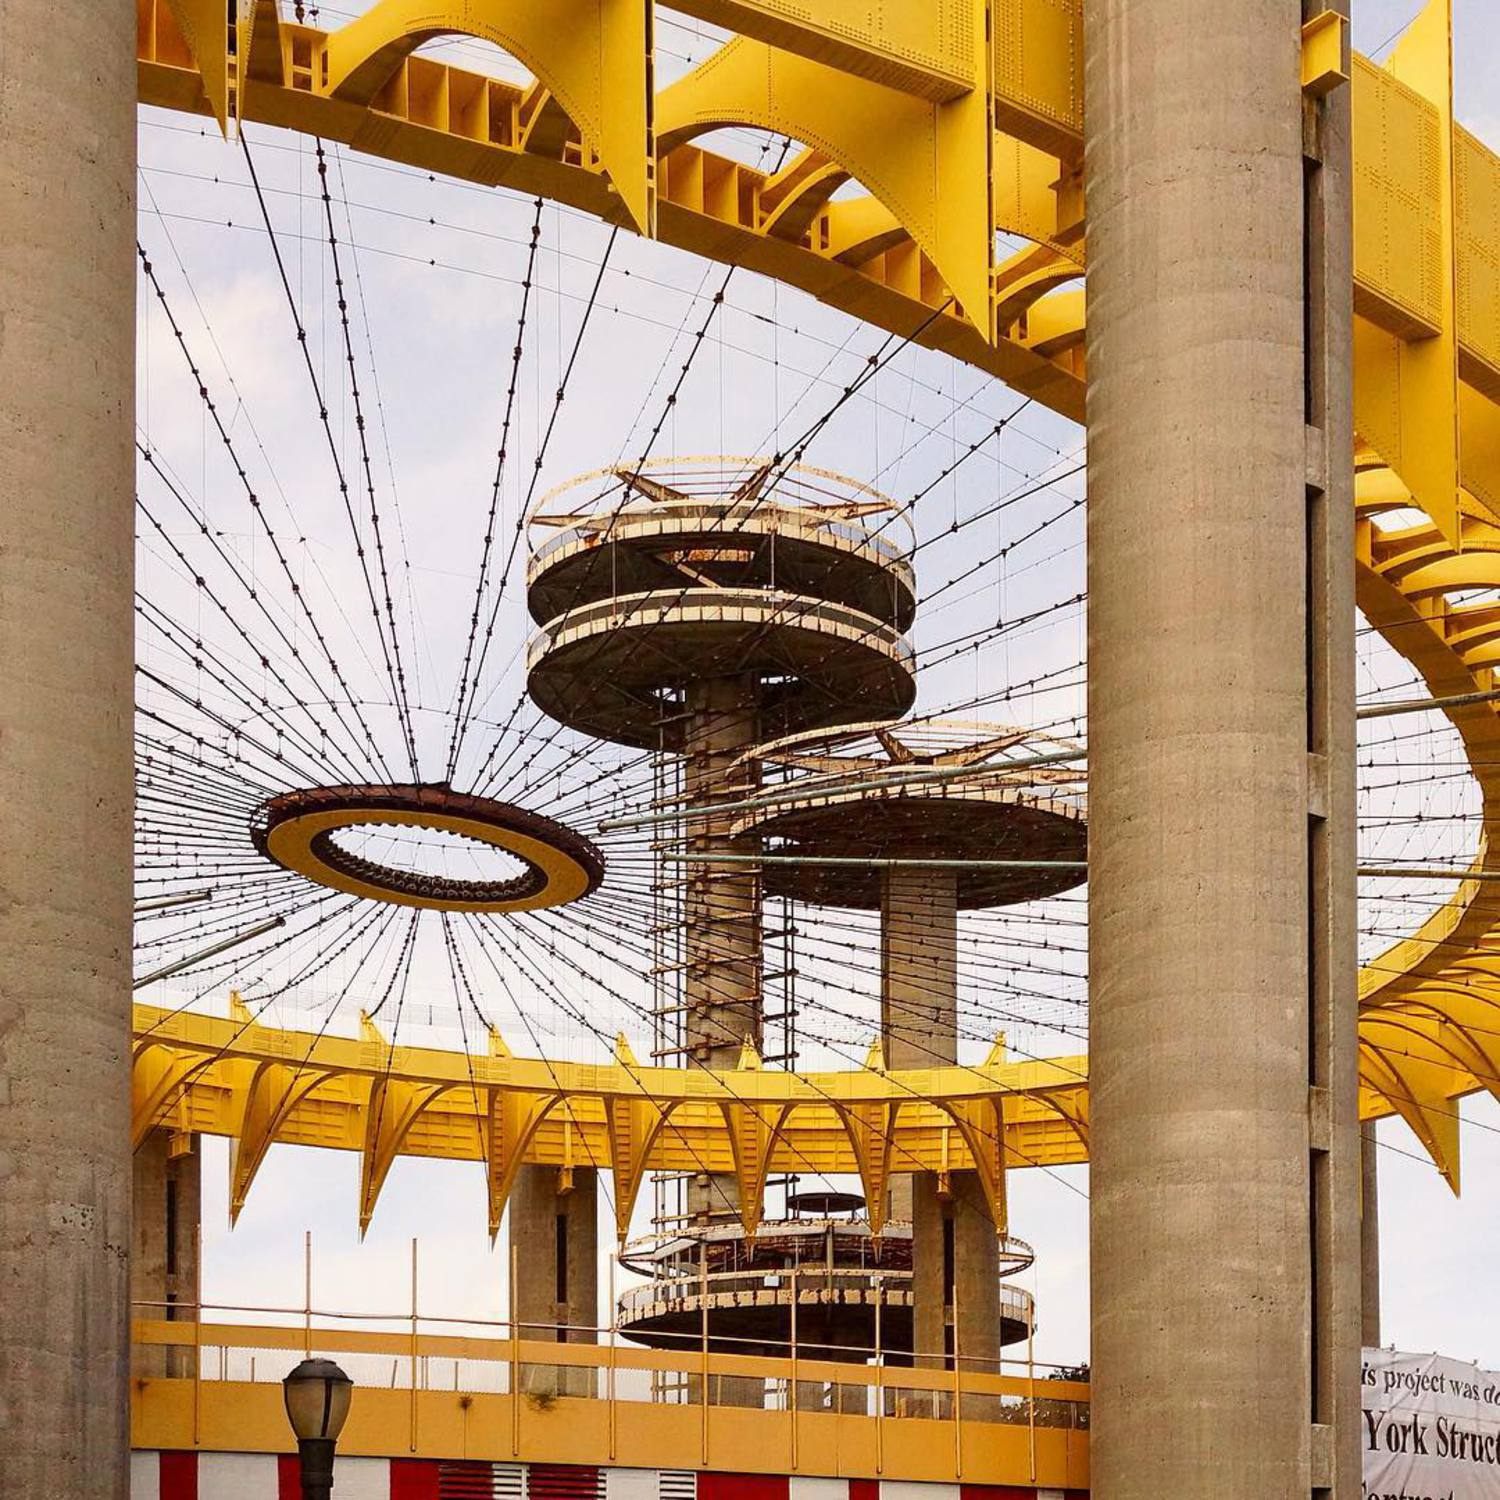 #newyorkstatepavilion #1964worldsfair #philipjohnson #levzetlin #tentoftomorrow #observationtowers #nationalregisterofhistoricplaces #spaceage #queensny #yellow #pfpavilion @pfpavilion #modernruins